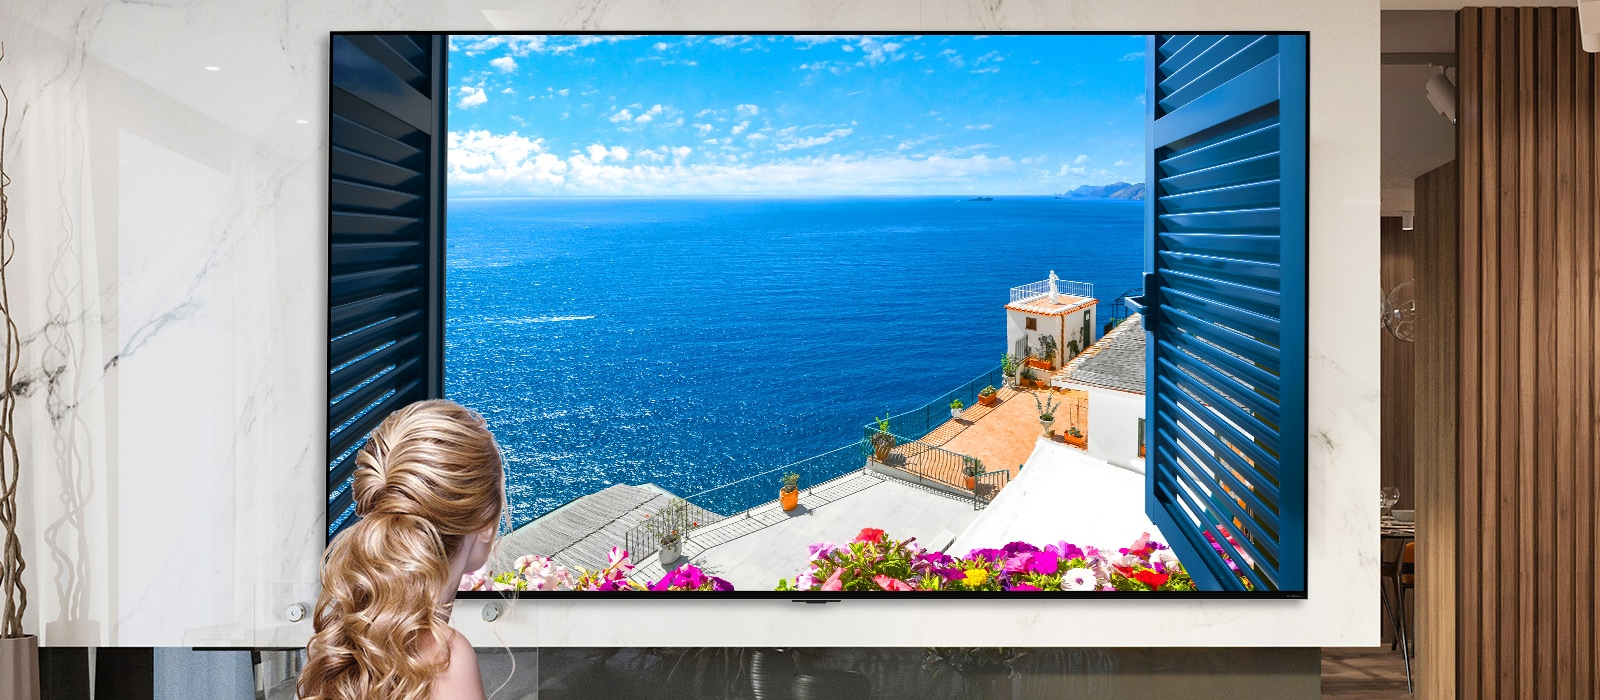 TV LG 65QNED919